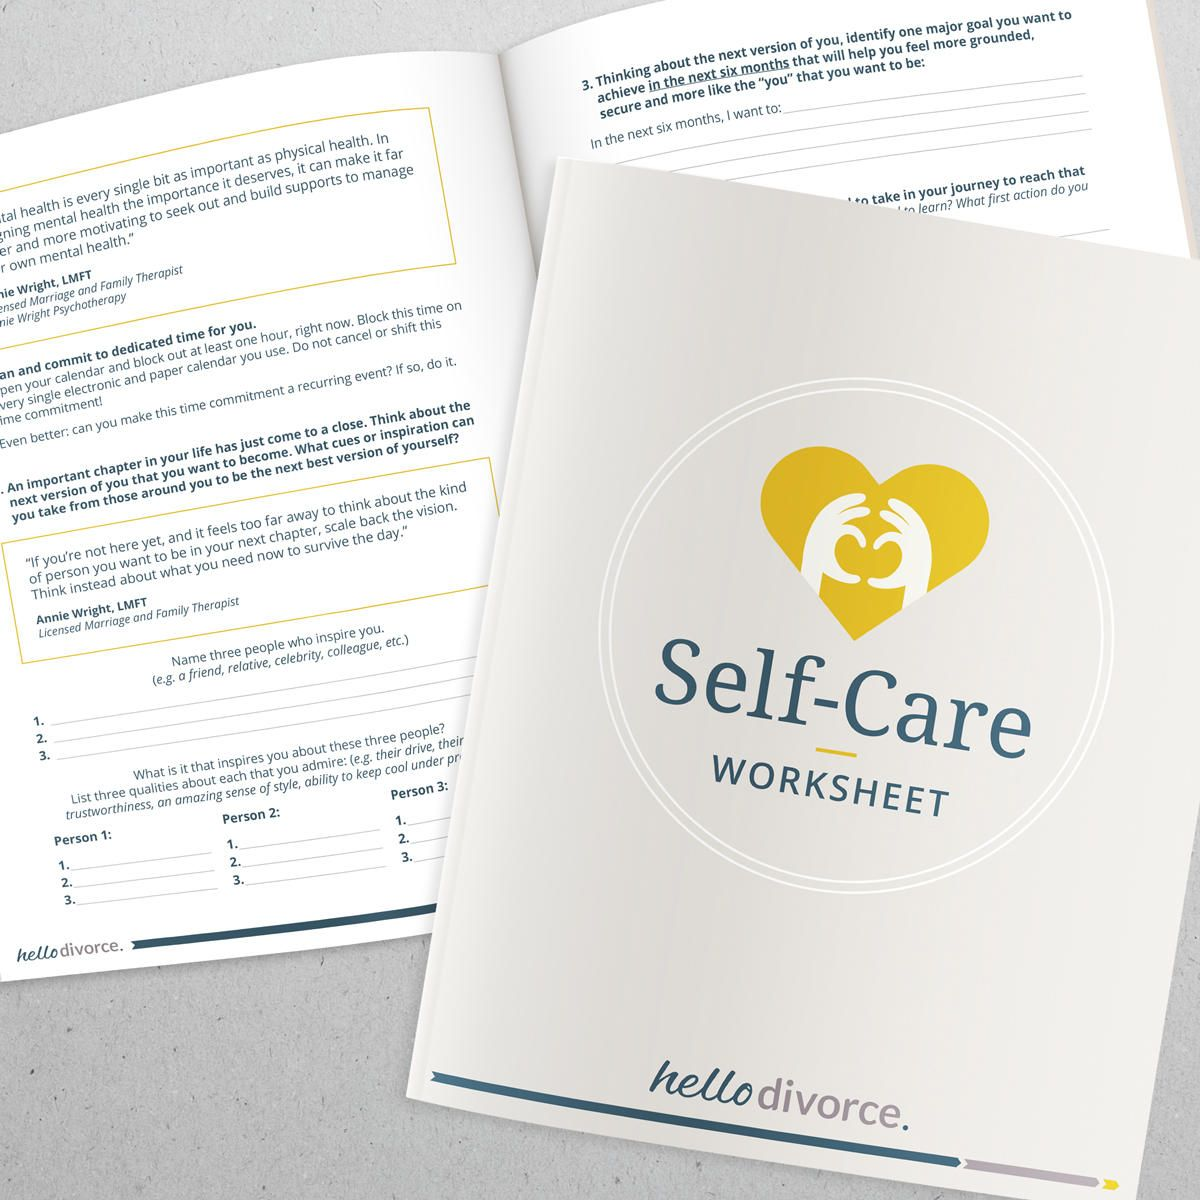 Designing A Self Care Plan For Your Life After Divorce Hello Divorce Self Care Worksheets Marriage And Family Therapist Quotes About Self Care